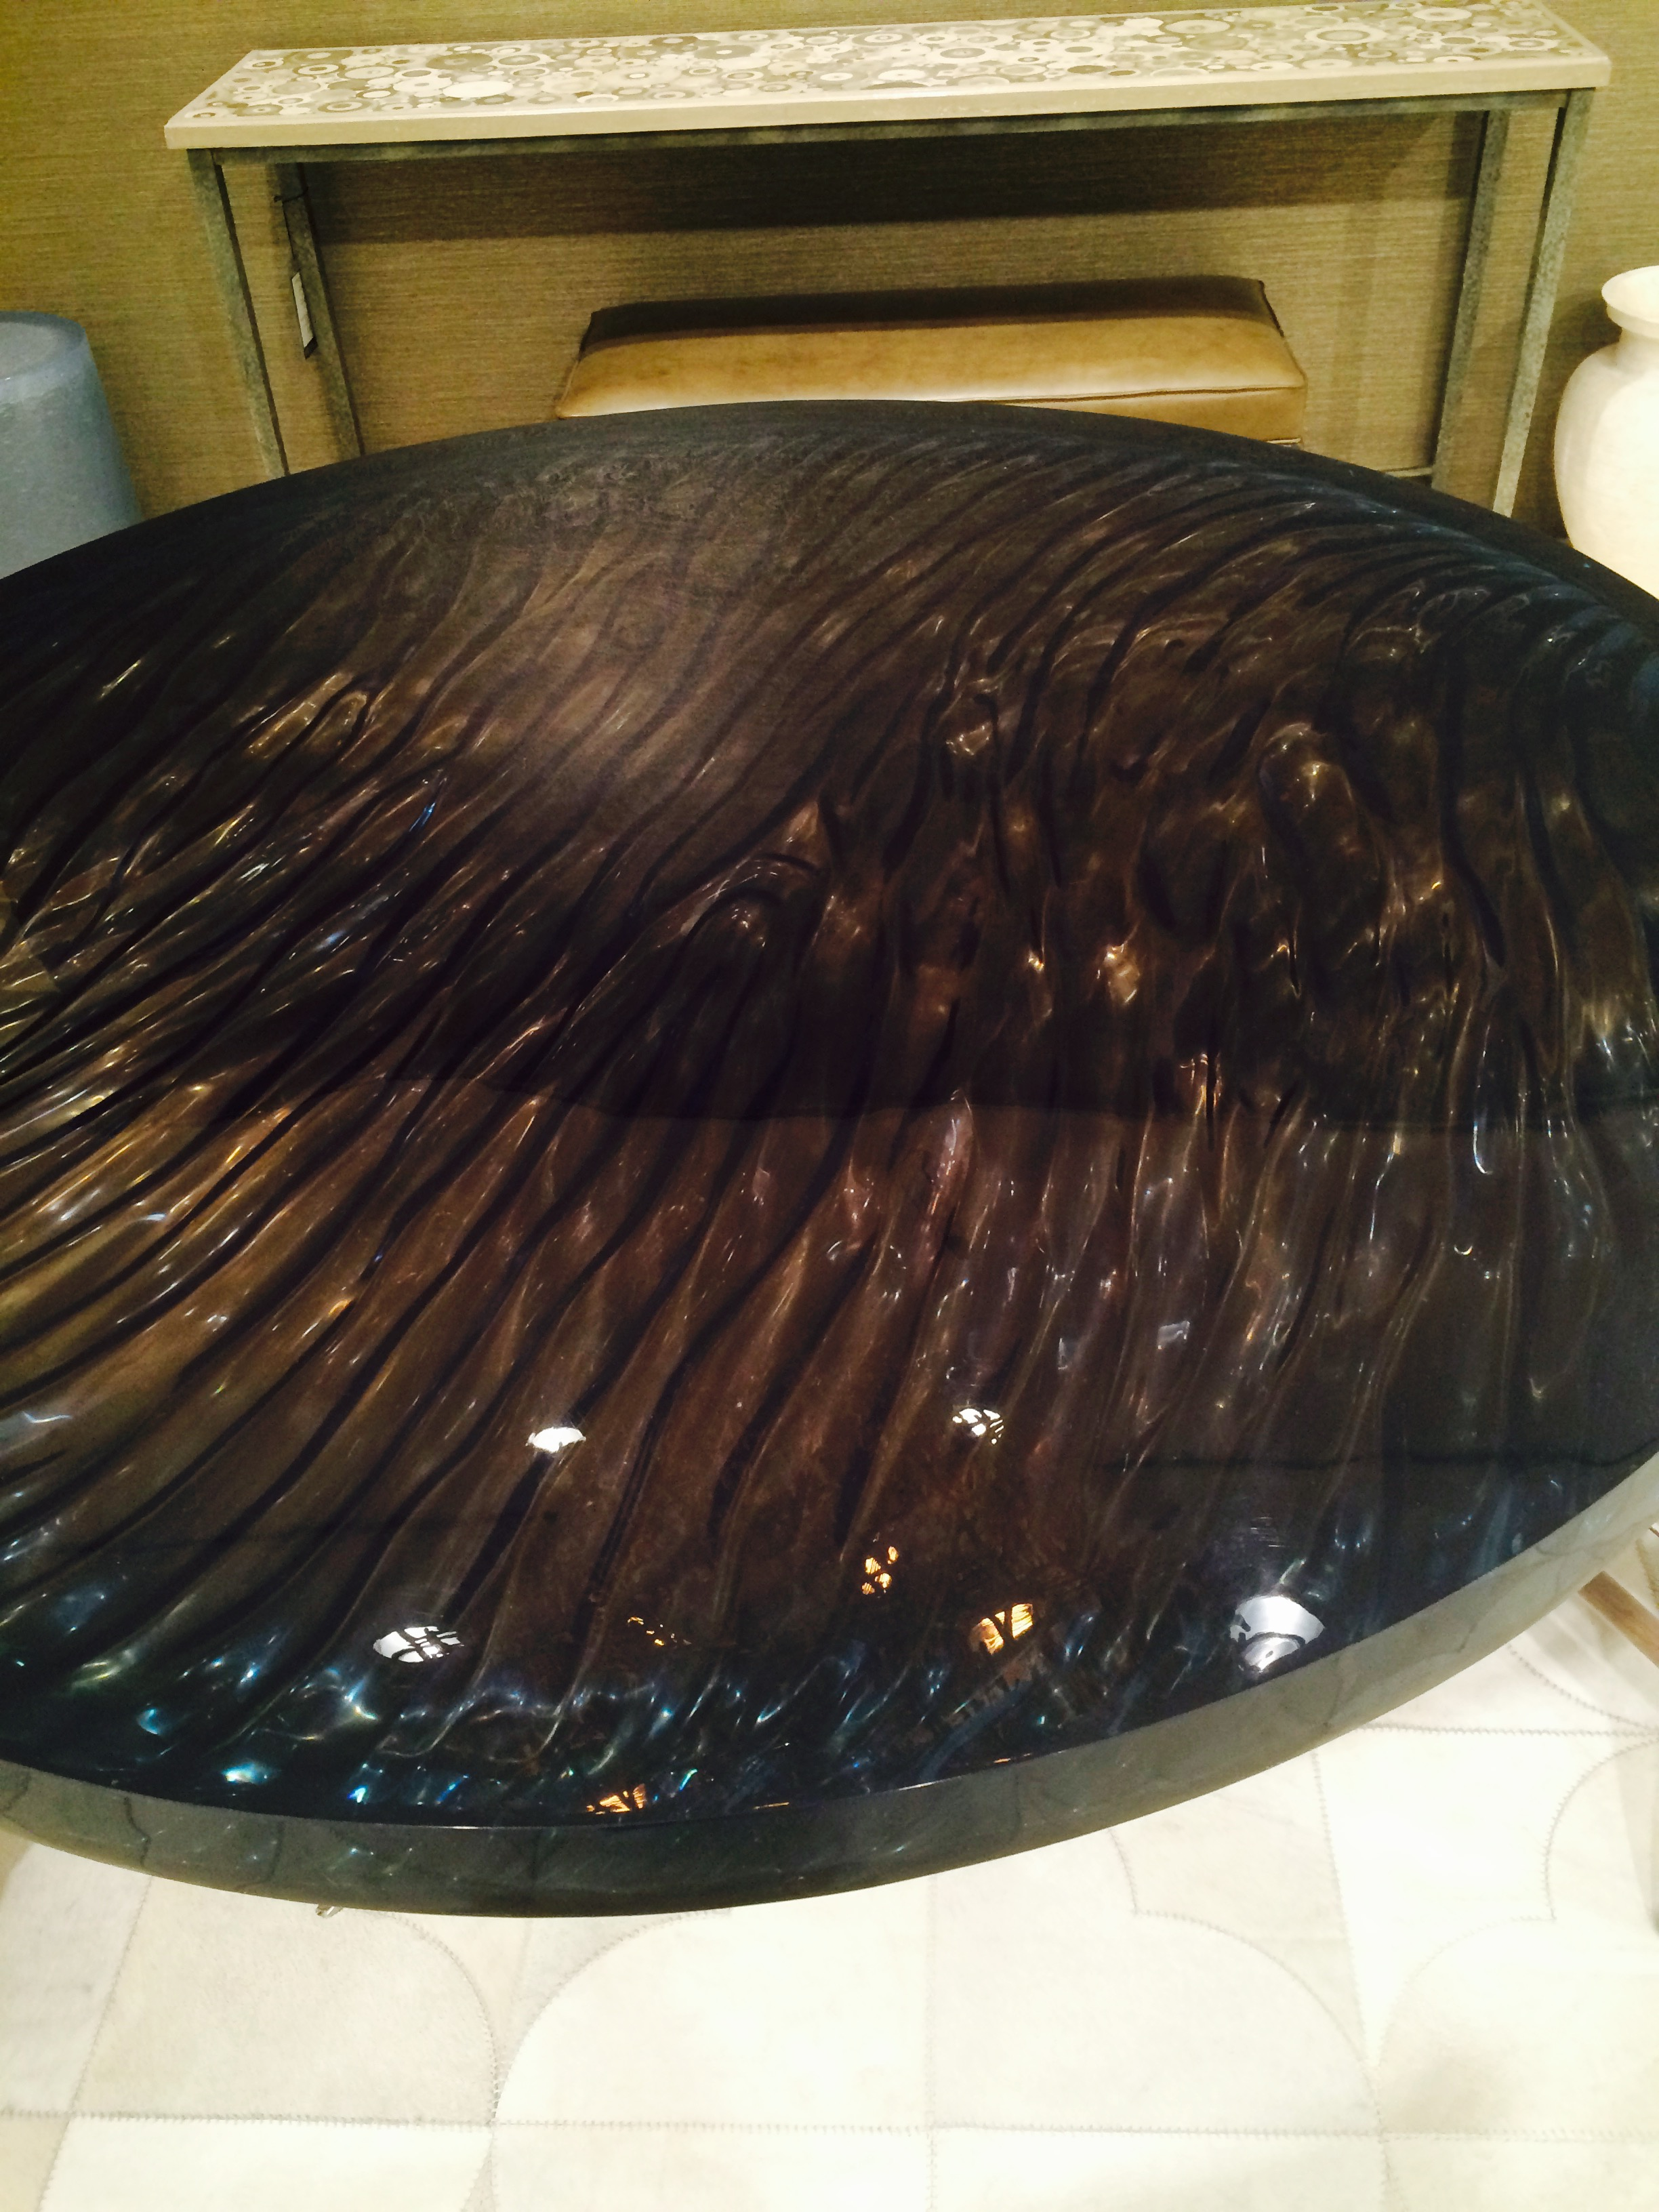 Iridescent ripple effect glass Dining table